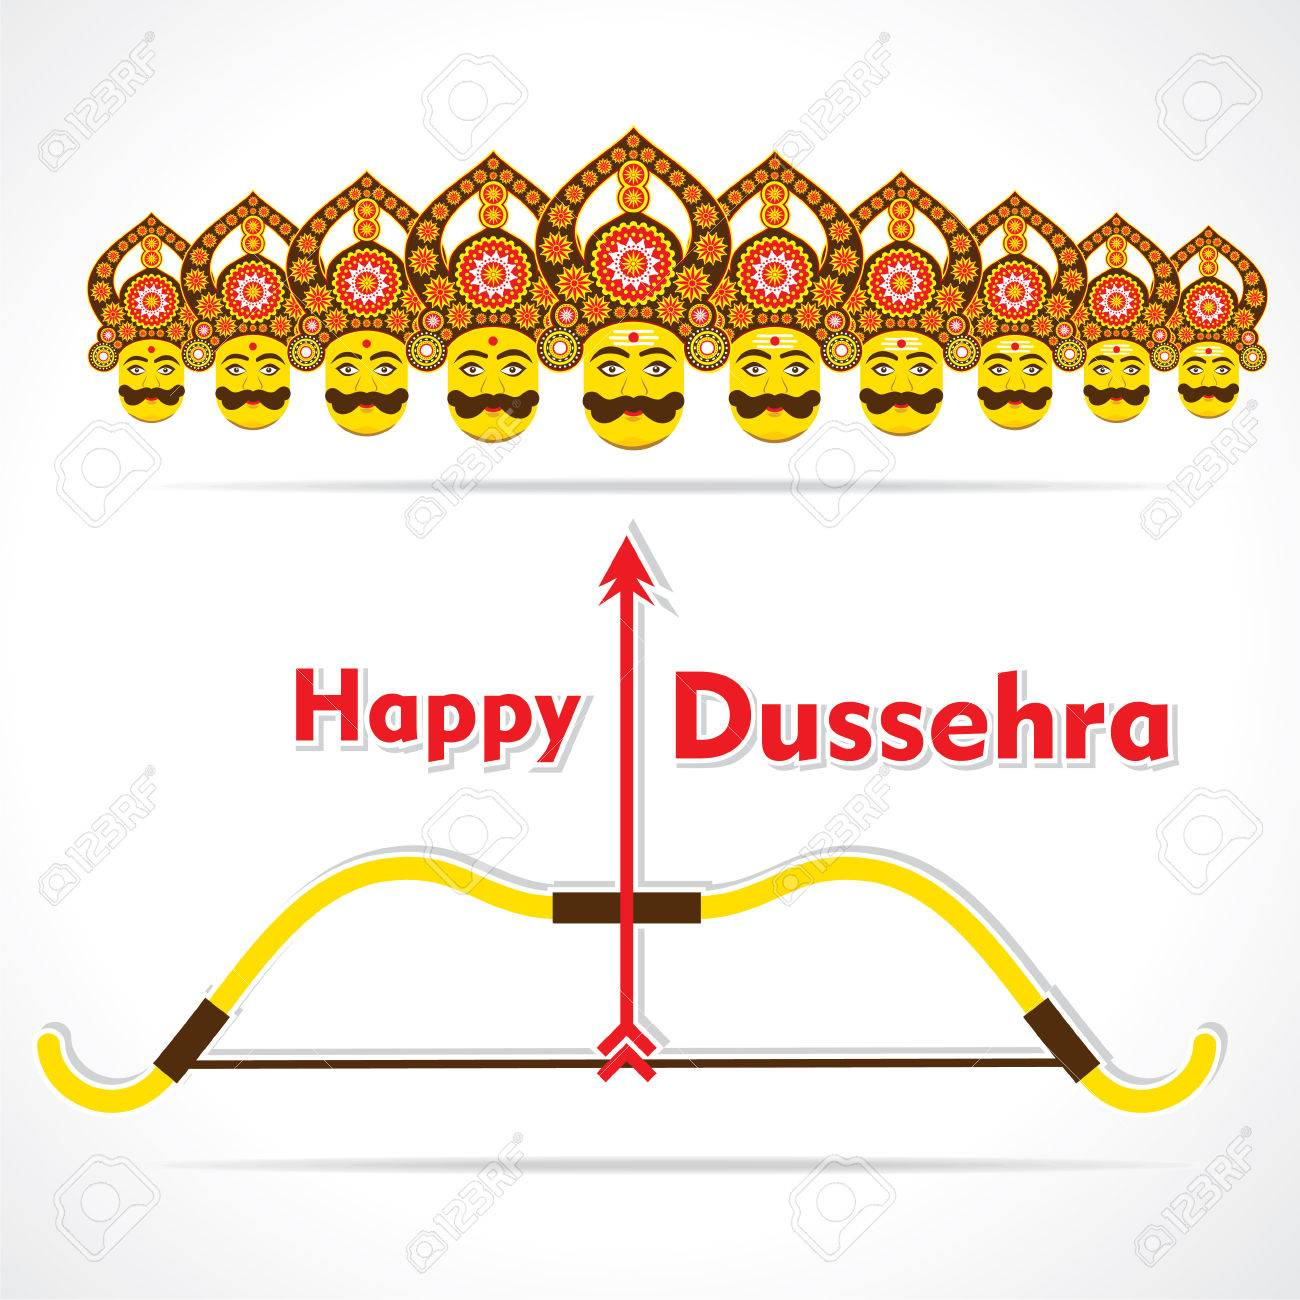 Happy dussehra greeting card design vector royalty free cliparts happy dussehra greeting card design vector stock vector 46135215 m4hsunfo